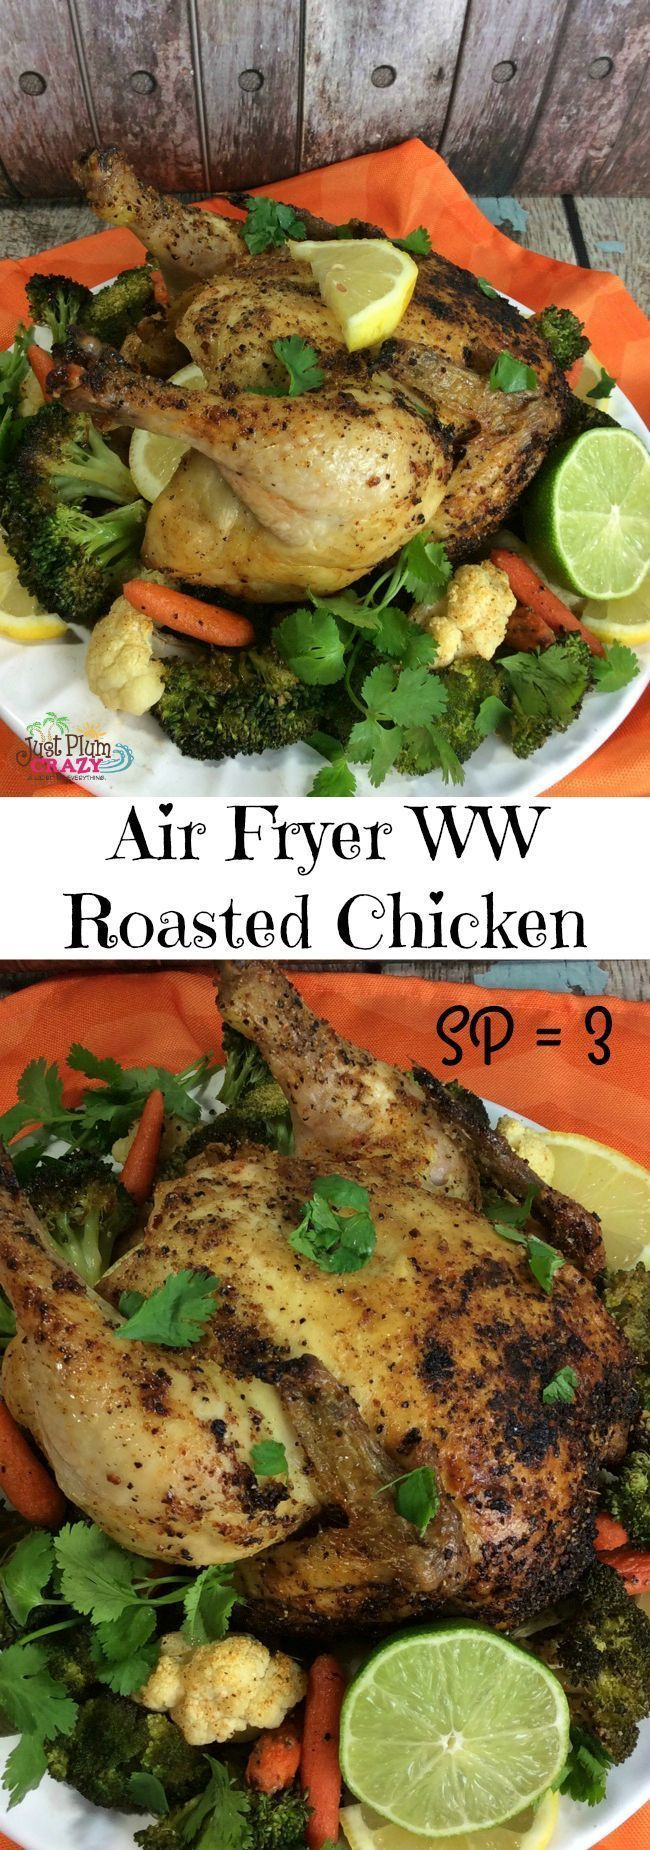 Roasted Chicken In Air Fryer Recipe Air fryer recipes